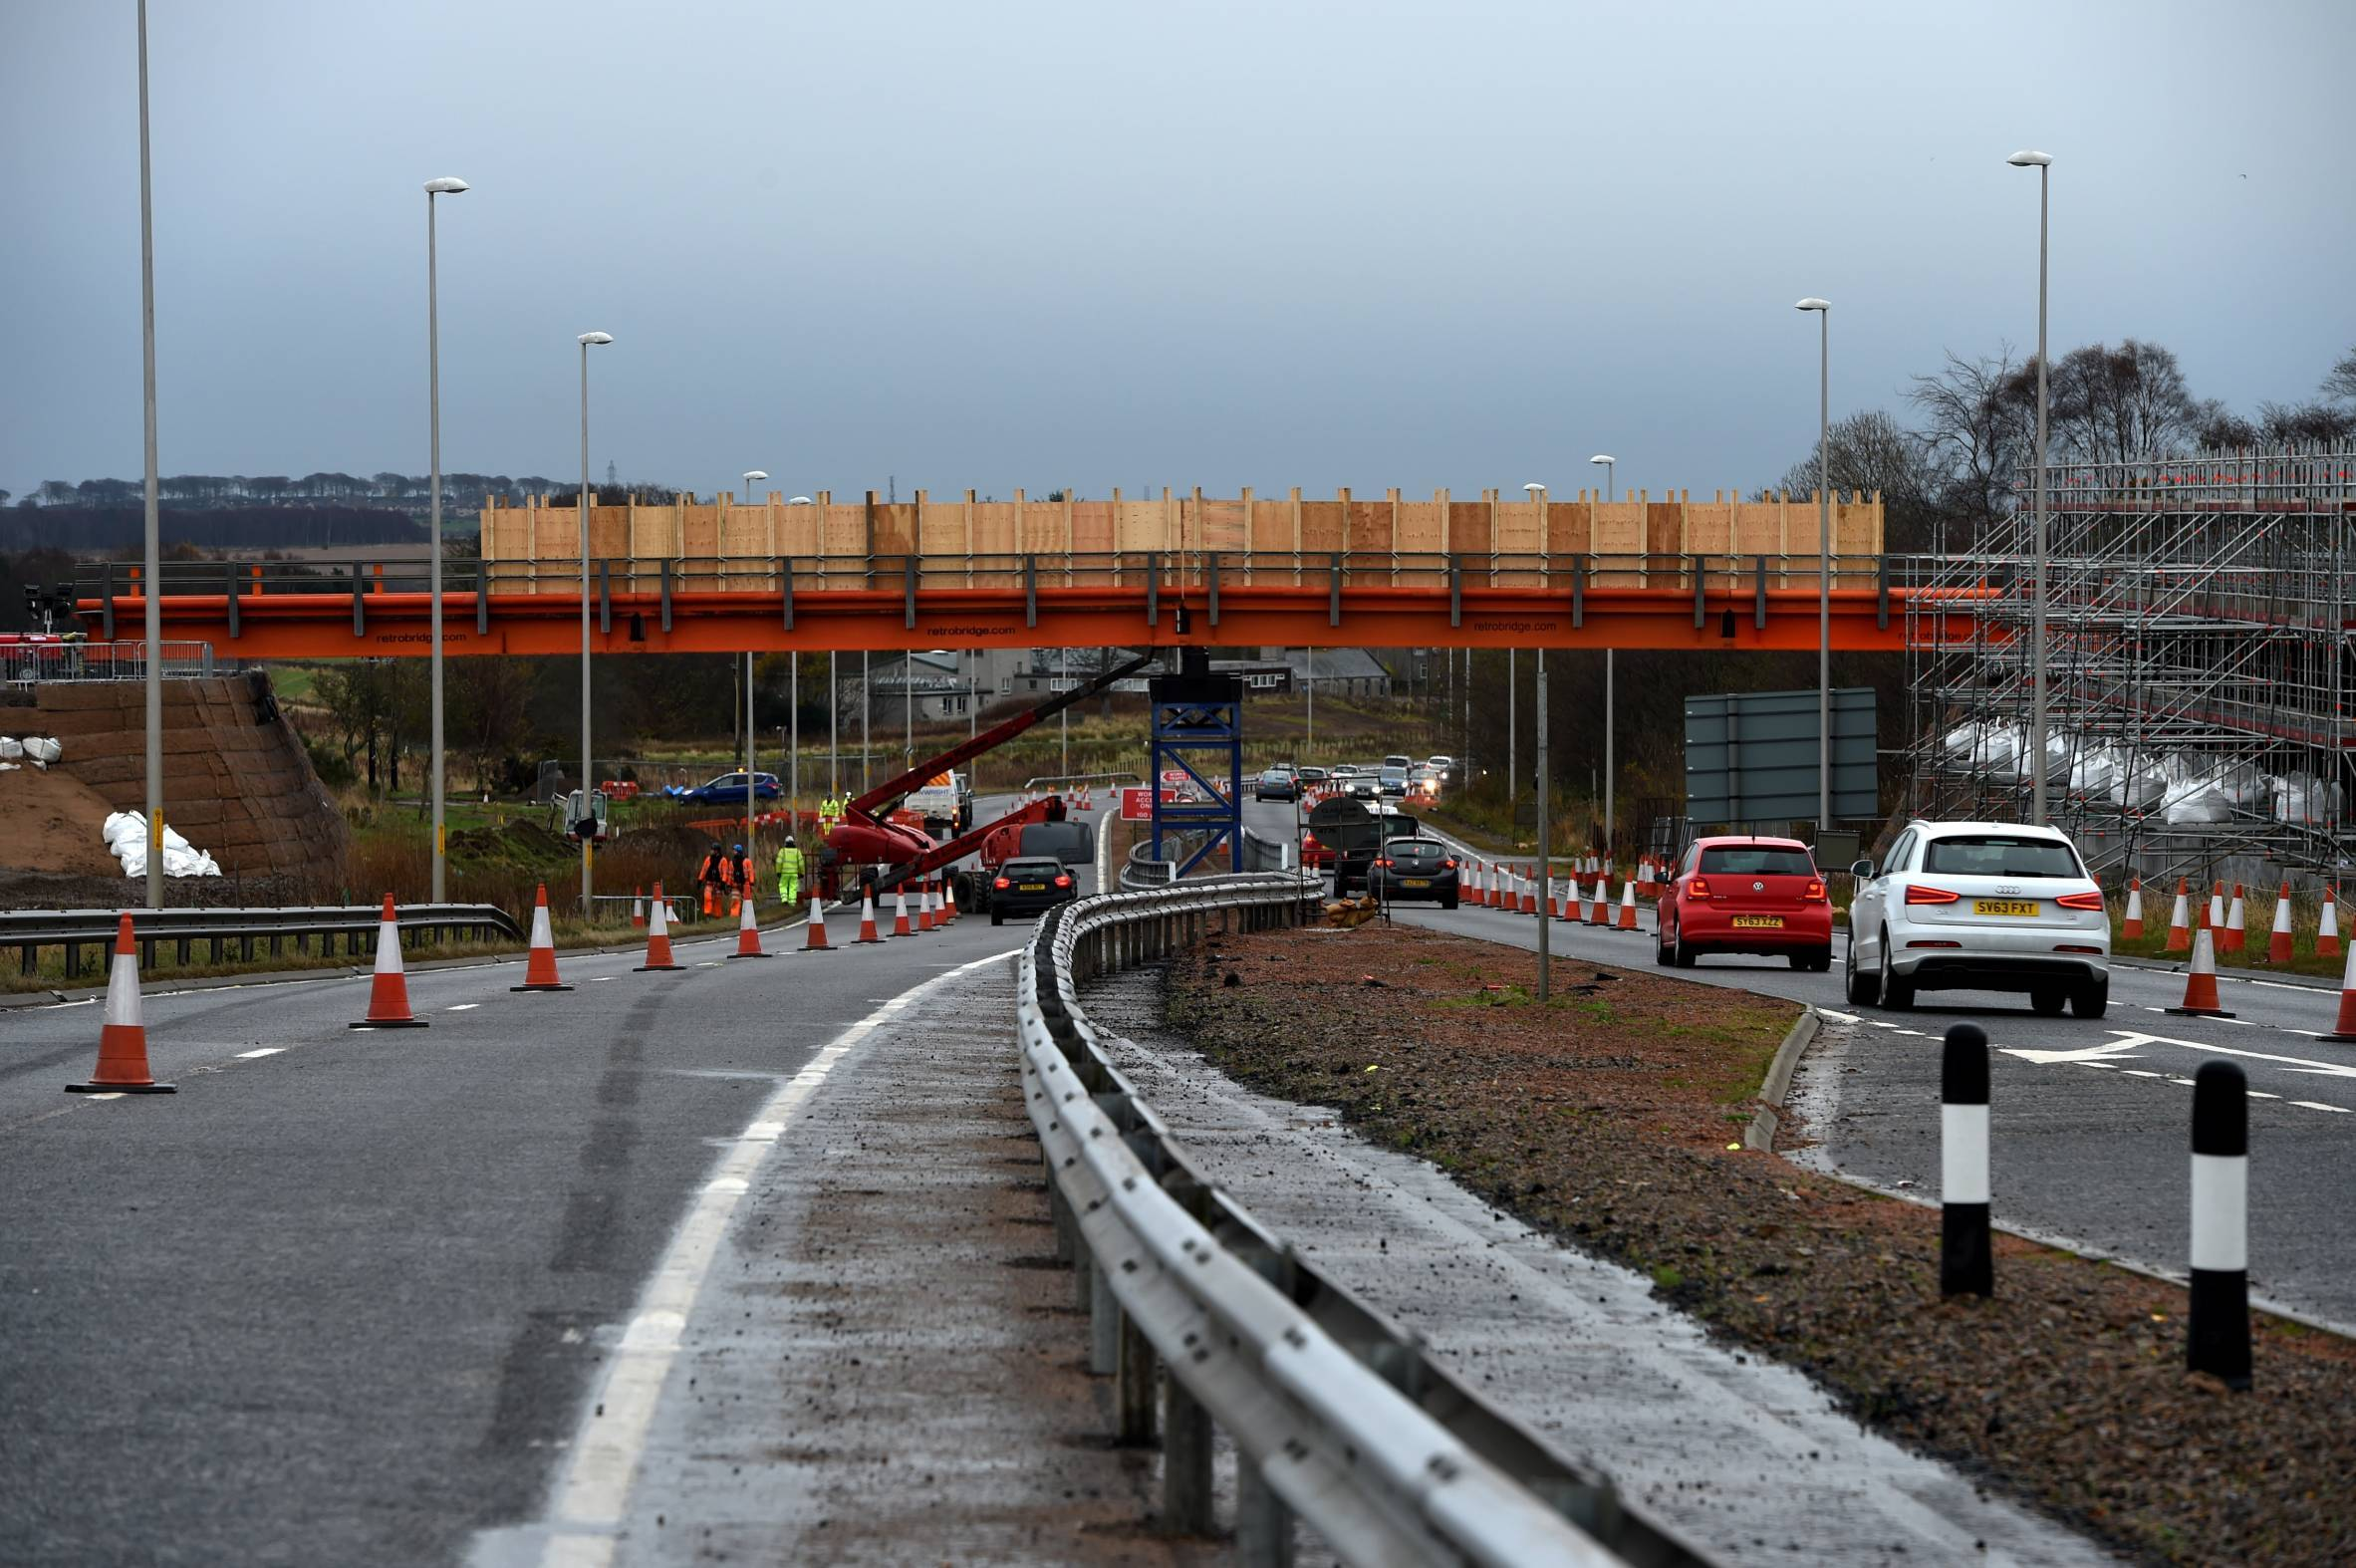 Work is currently taking place around the A96 for the AWPR.